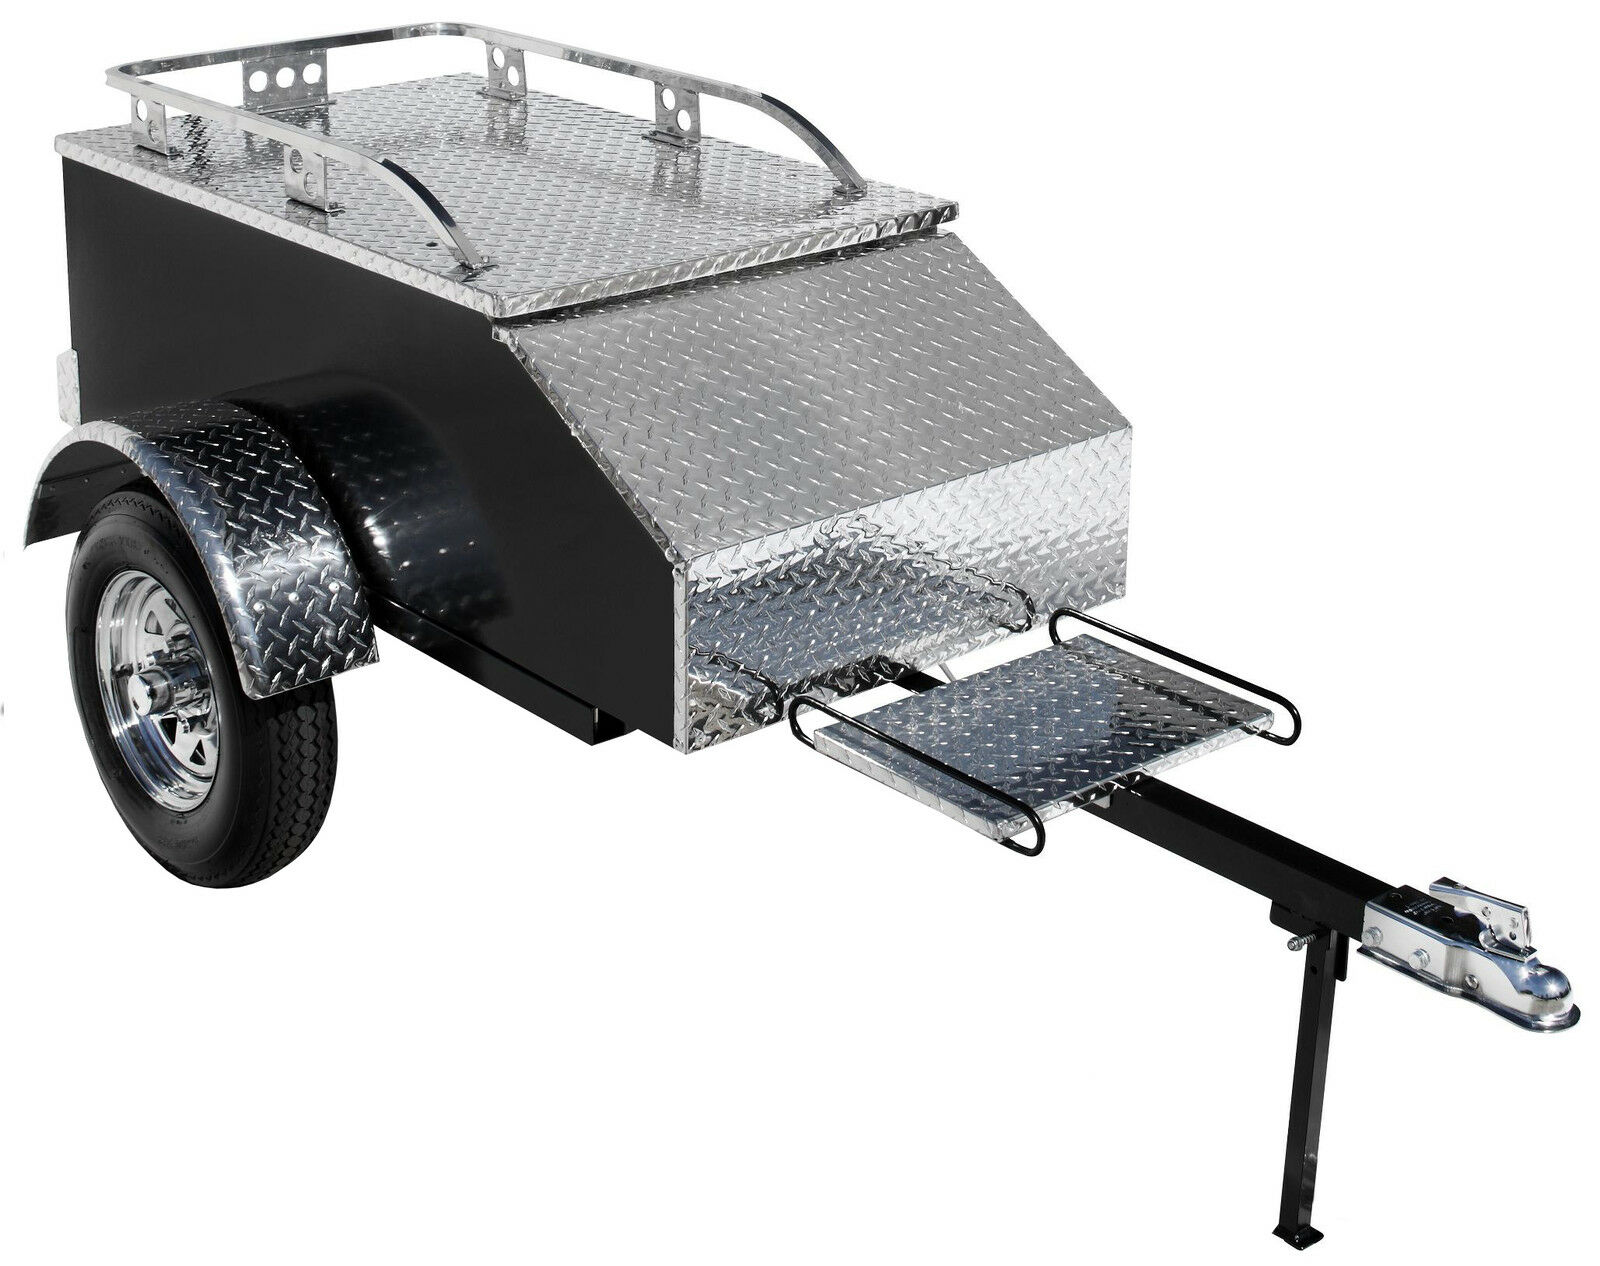 Ebay motorcycle pull behind cargo trailer autos post for Ebay motors car trailers